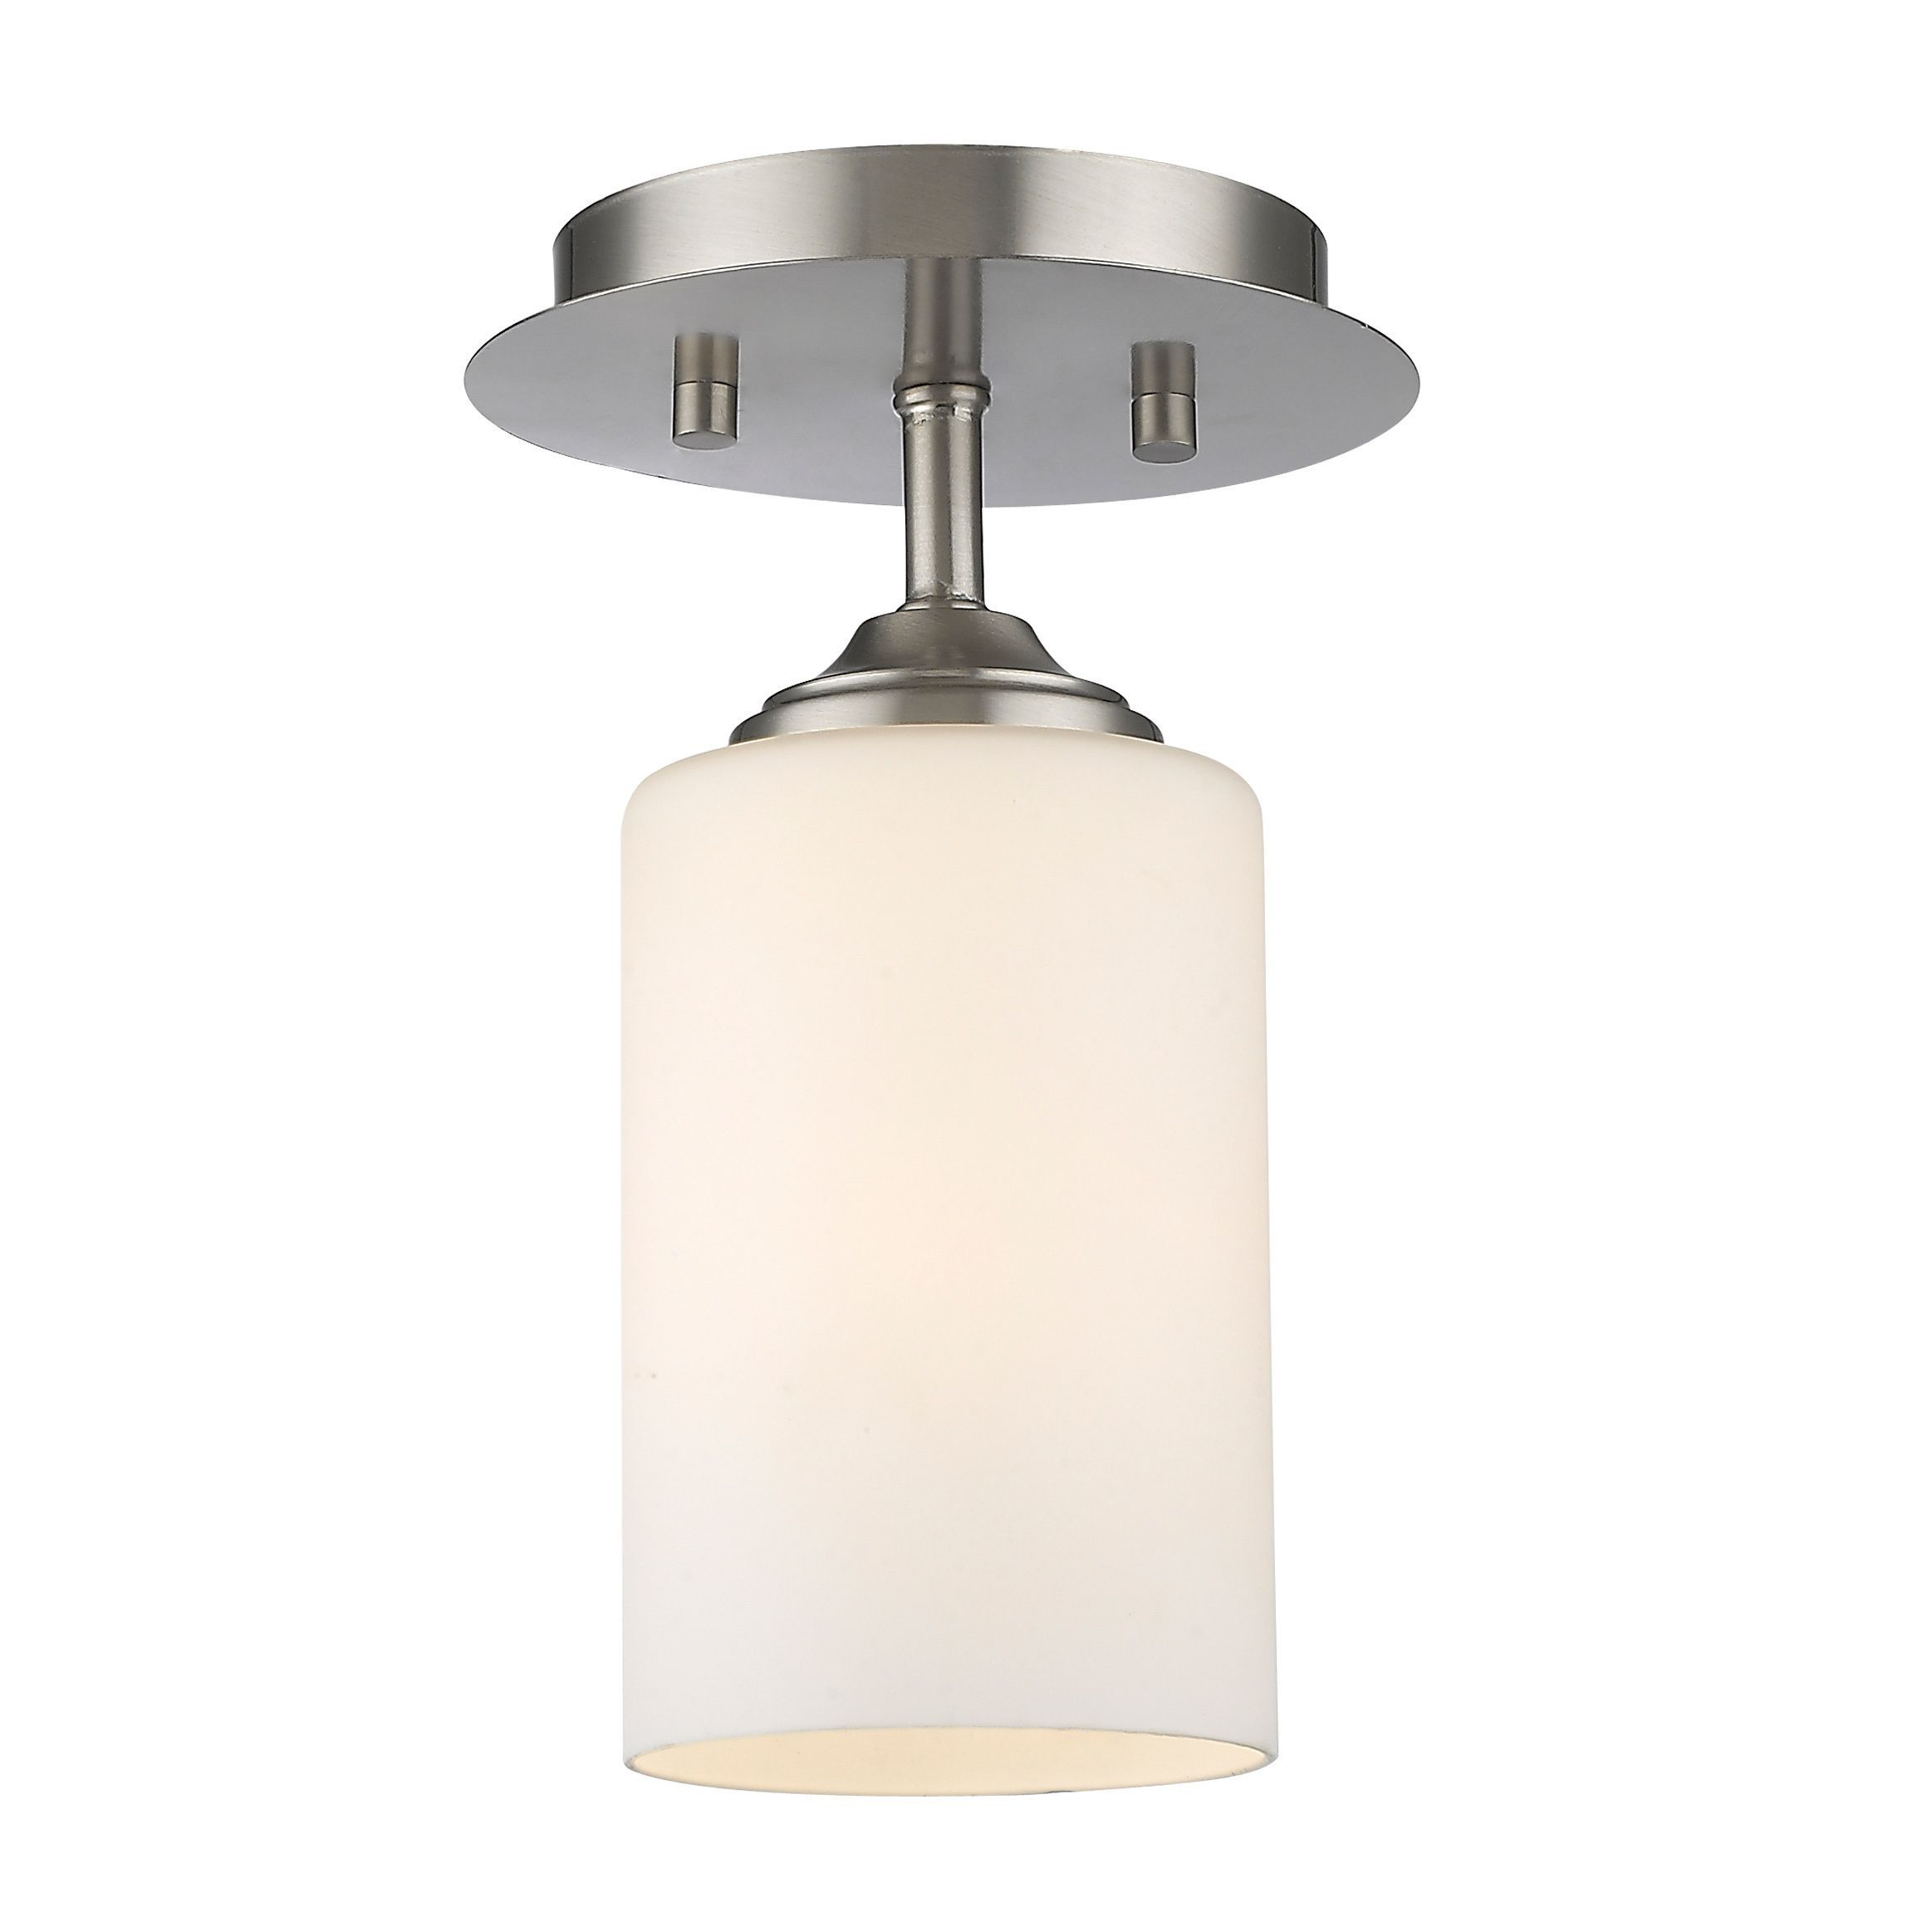 george ceilings wide mounts product light three zm mount dots transitional nickel ceiling brushed semi kovacs flush